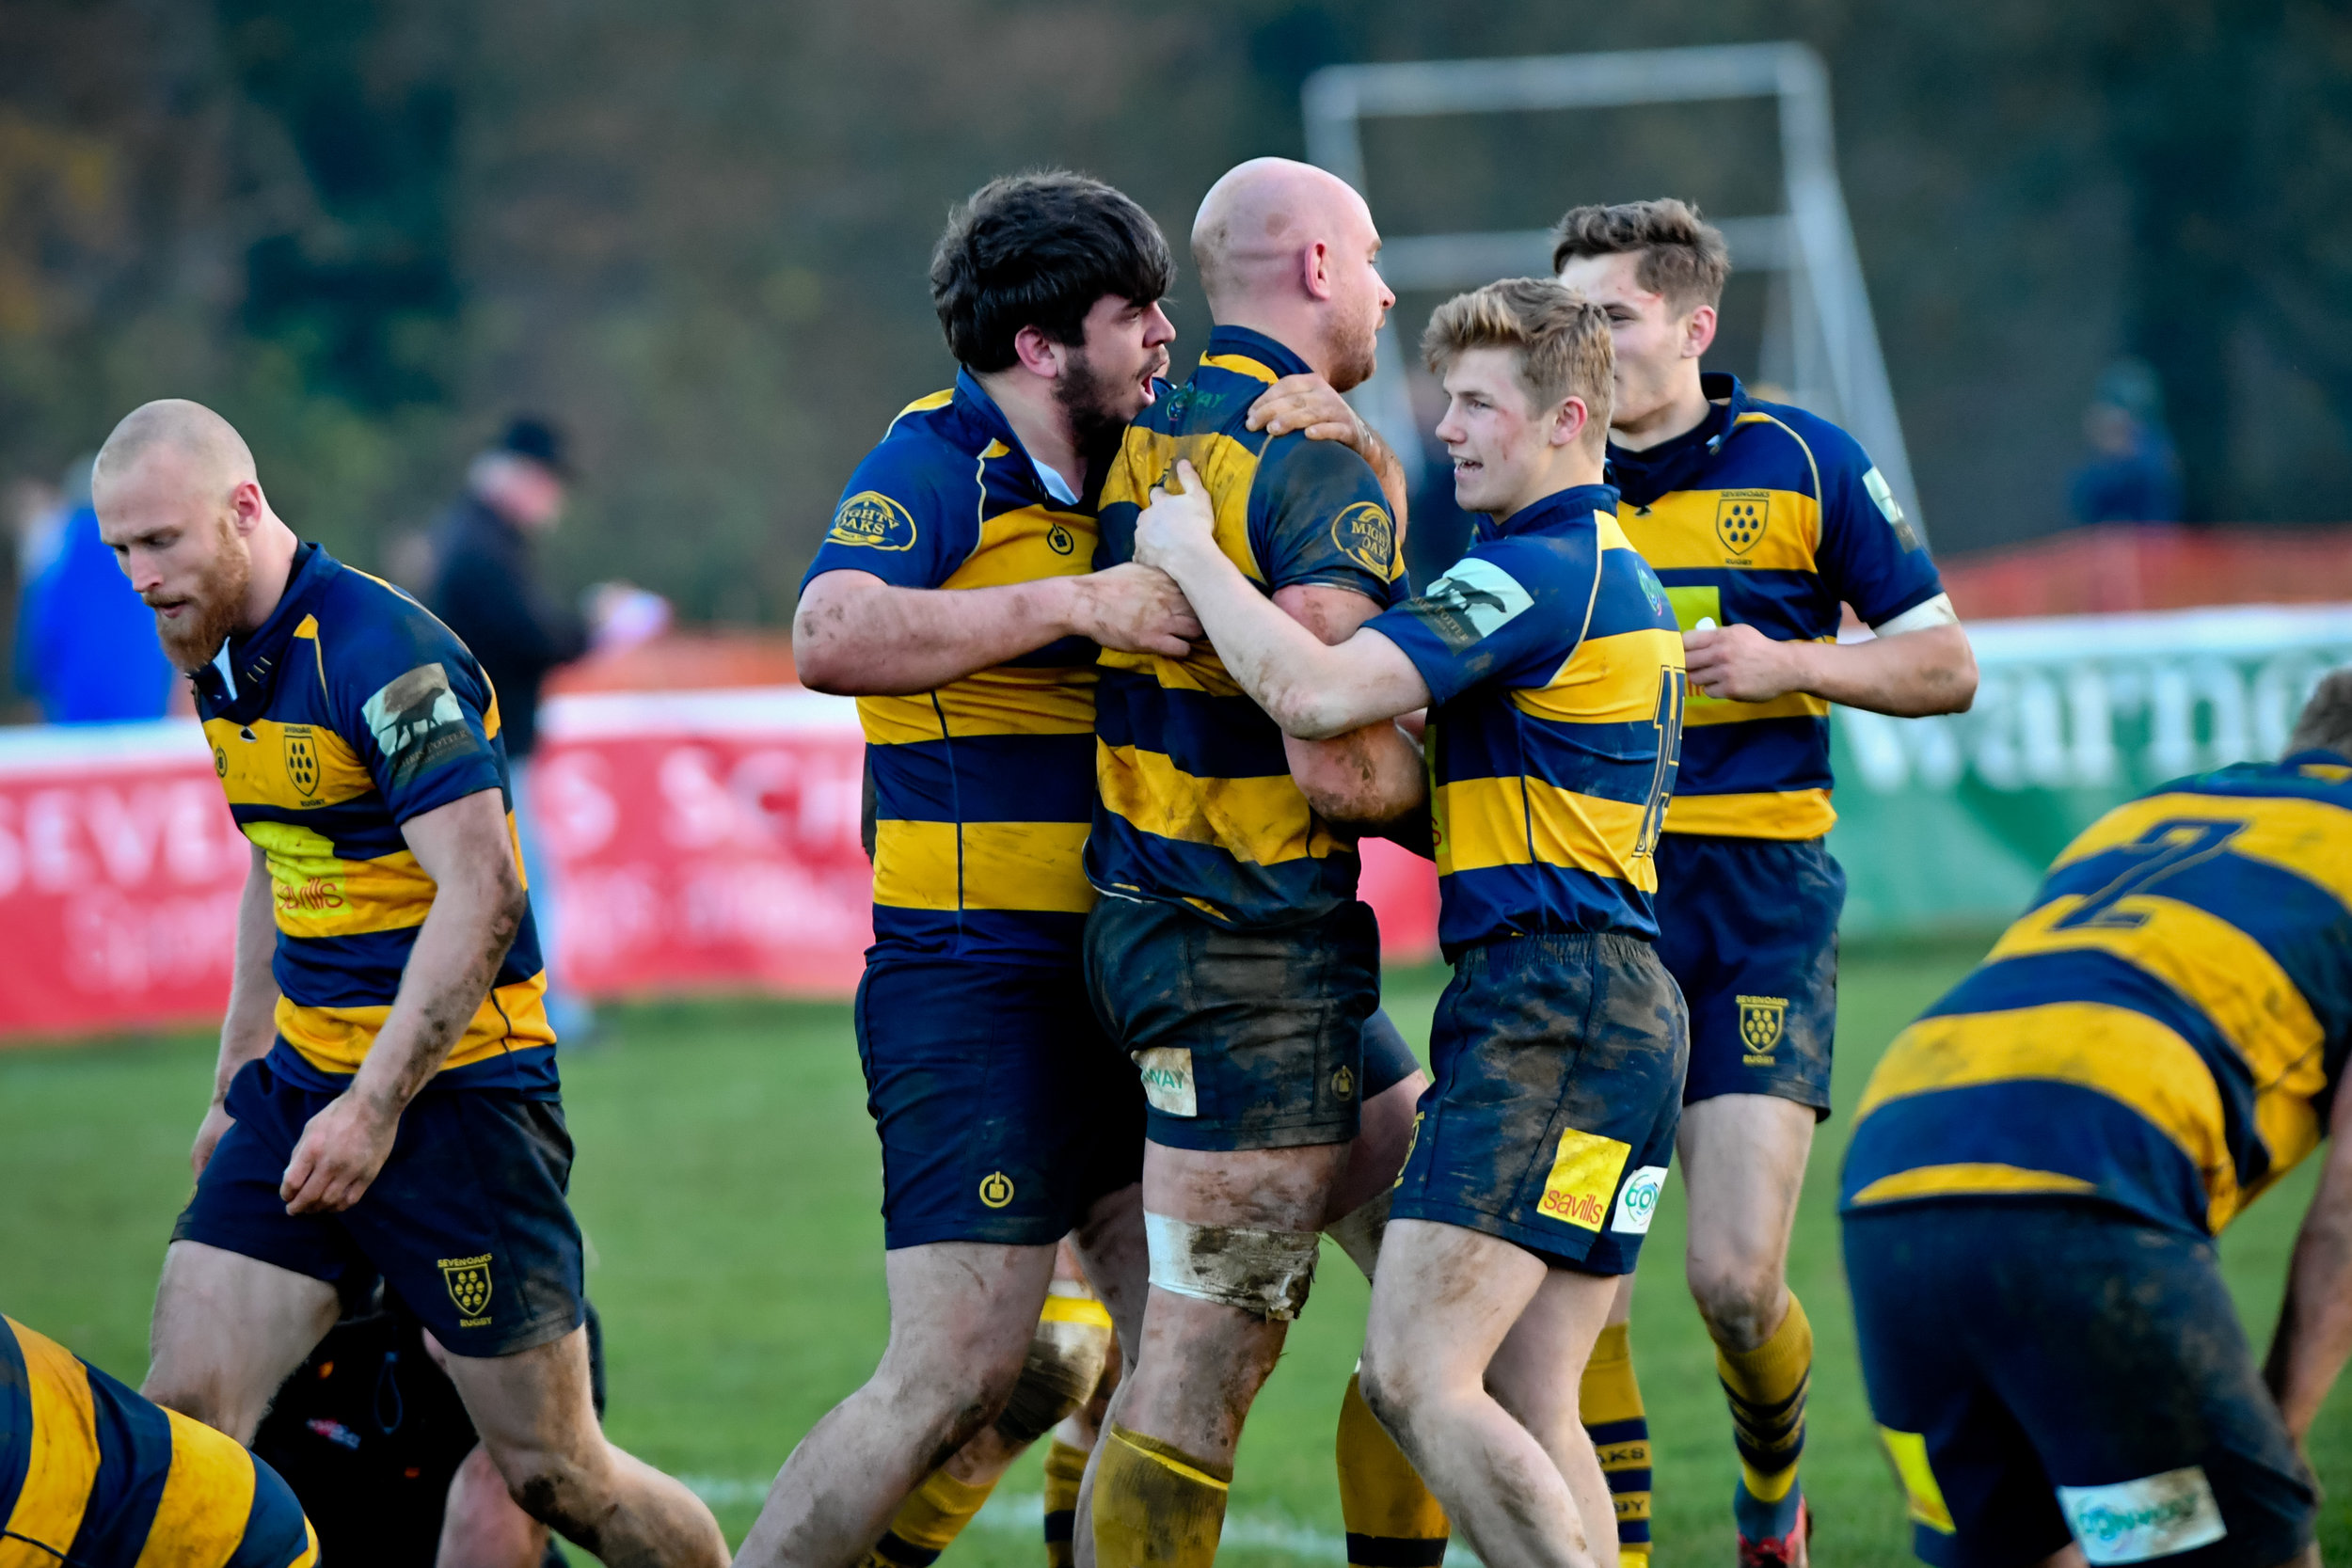 Captain Fantastic! Oaks Skipper Stuart Coleman is congratulated by team mates Matt Simmons and debutant Henry Carter after scoring Oaks try. Photo Credit: David Purday